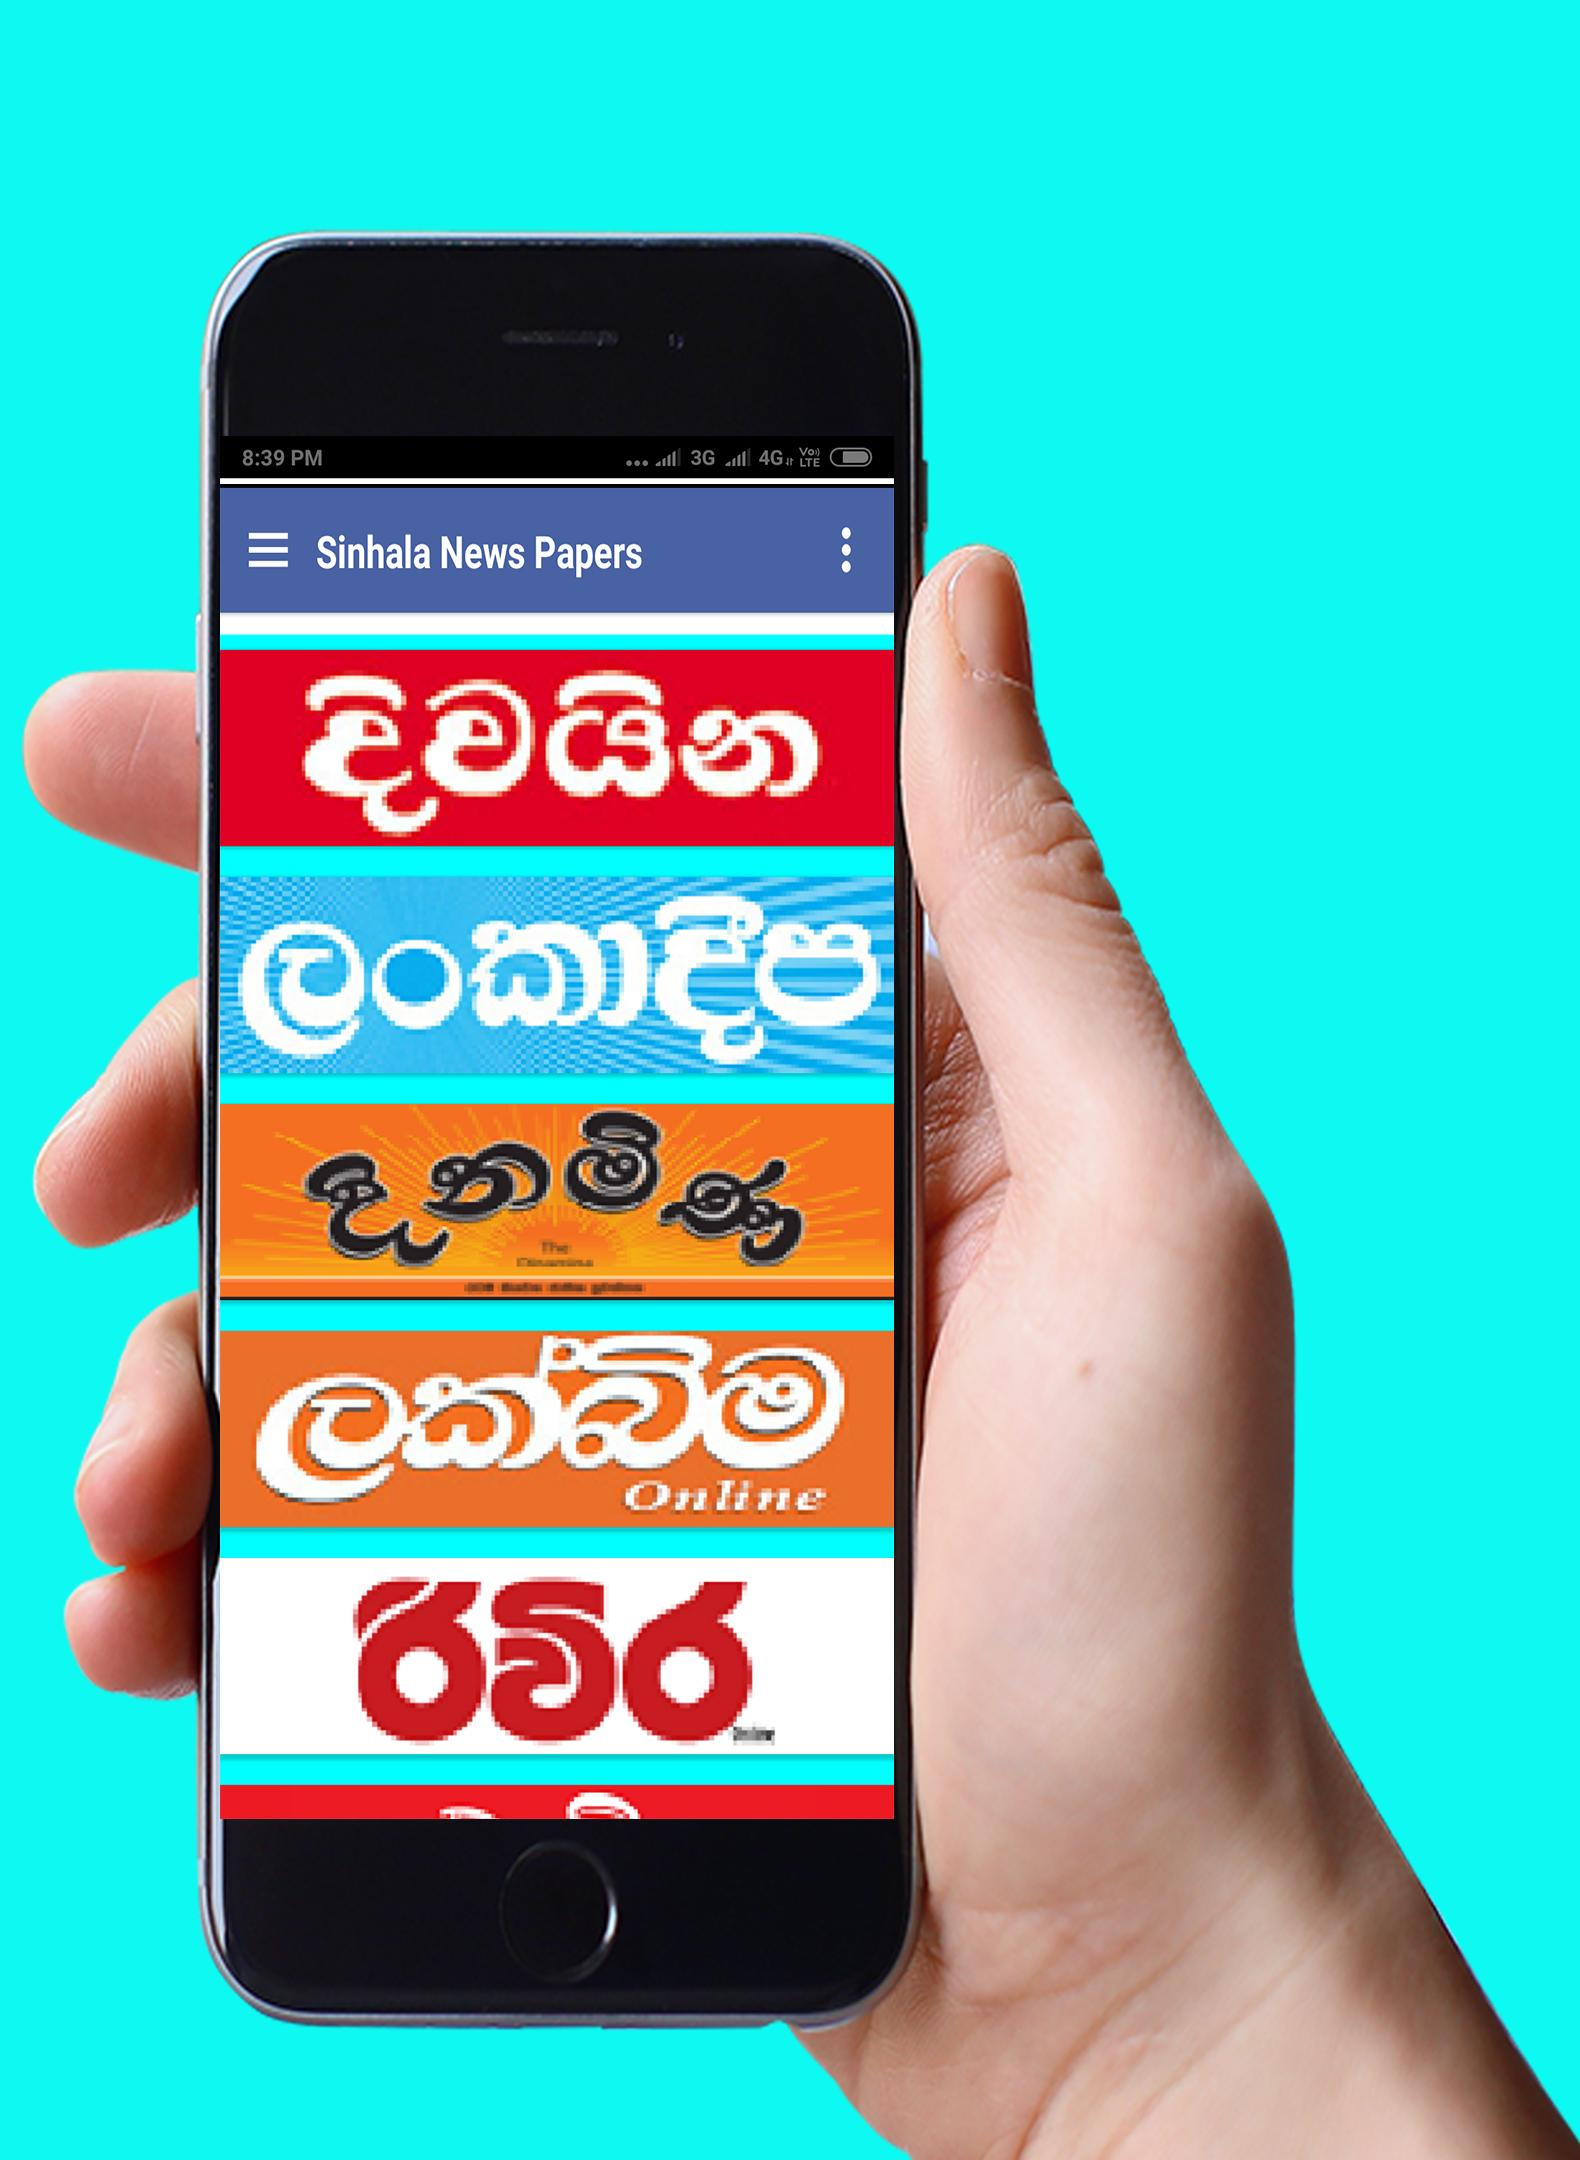 Sinhala News Papers for Android - APK Download